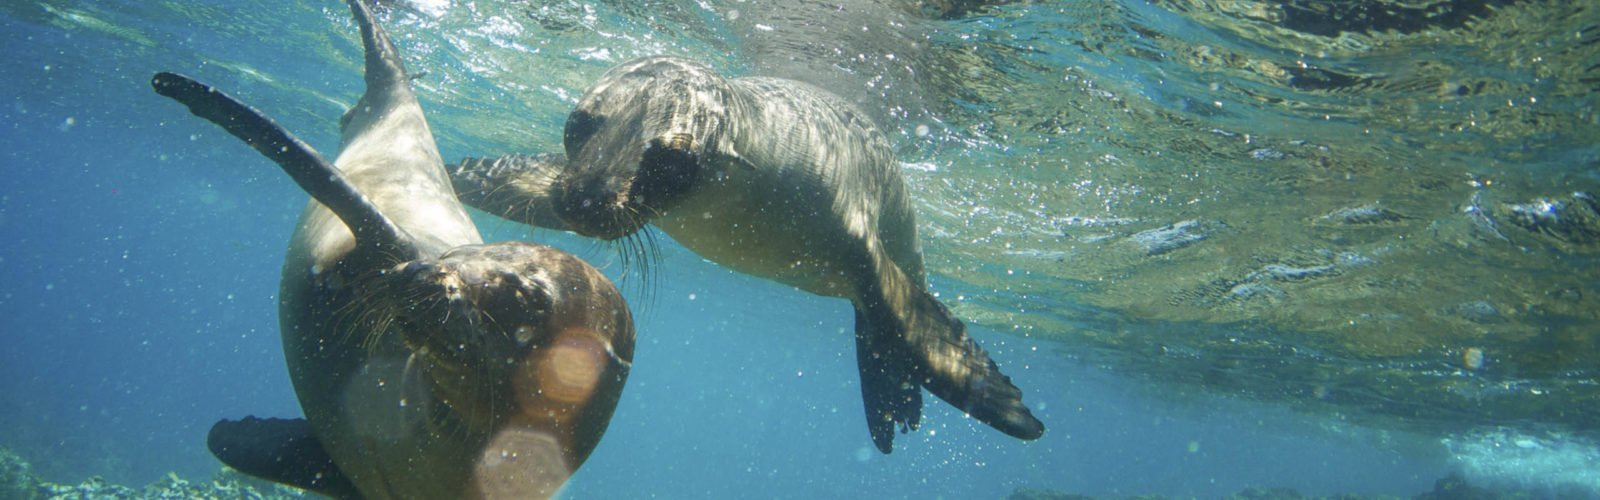 Two Galapagos Sea Lions Frolic Together Underwater